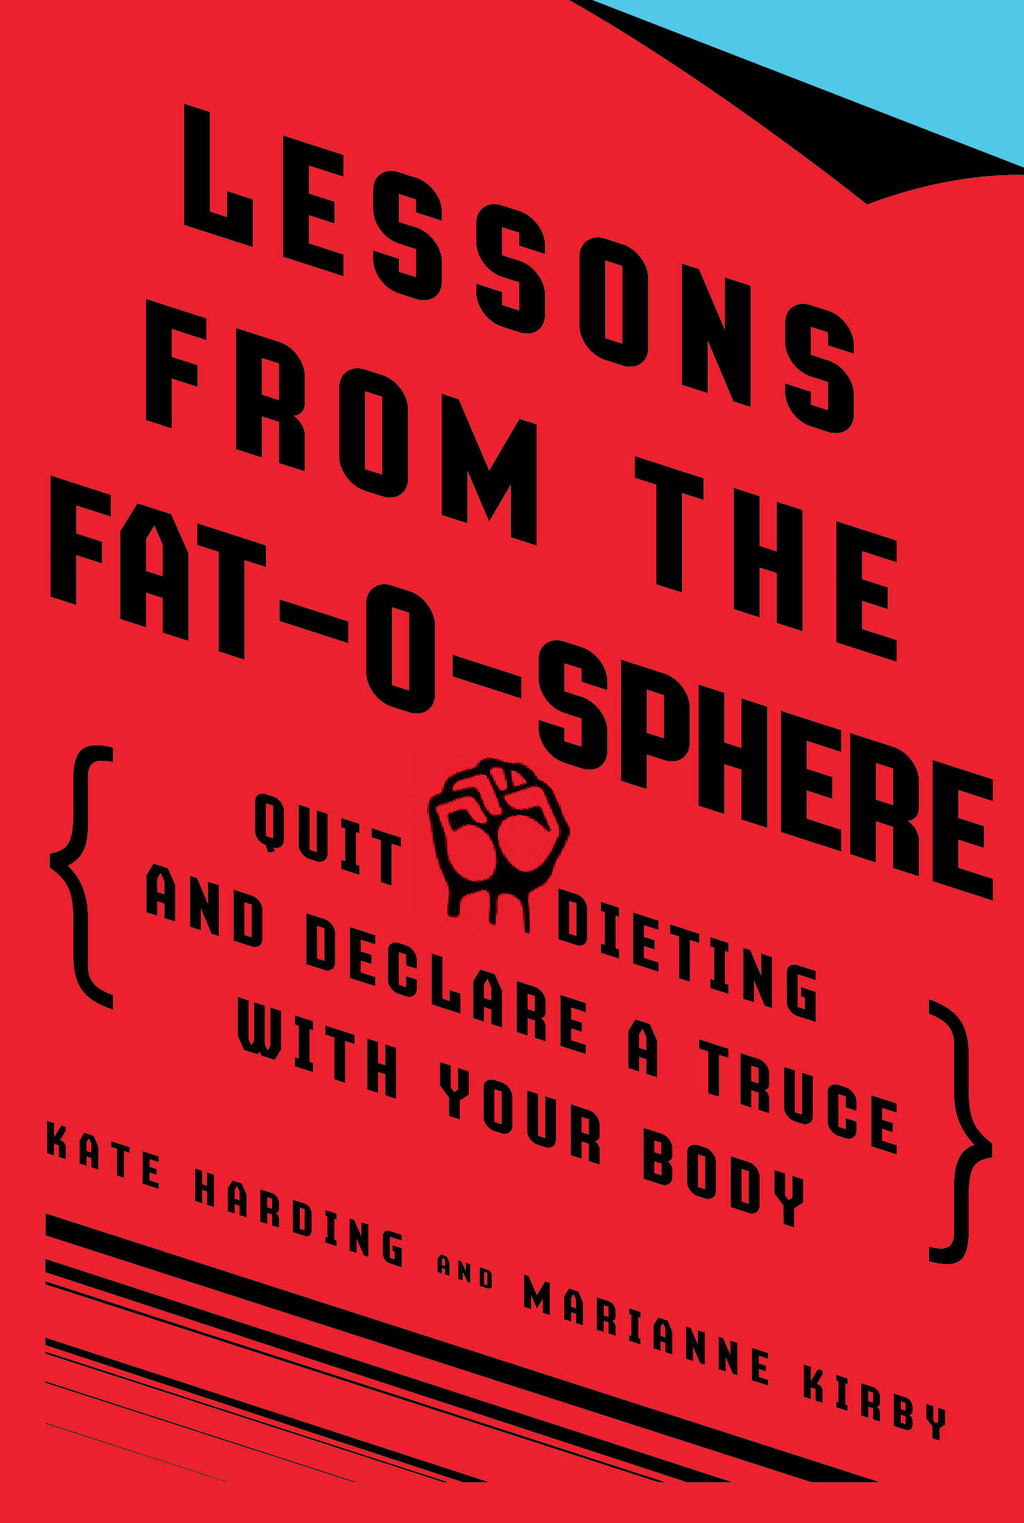 Lessons from the Fat-o-sphere By: Kate Harding,Marianne Kirby